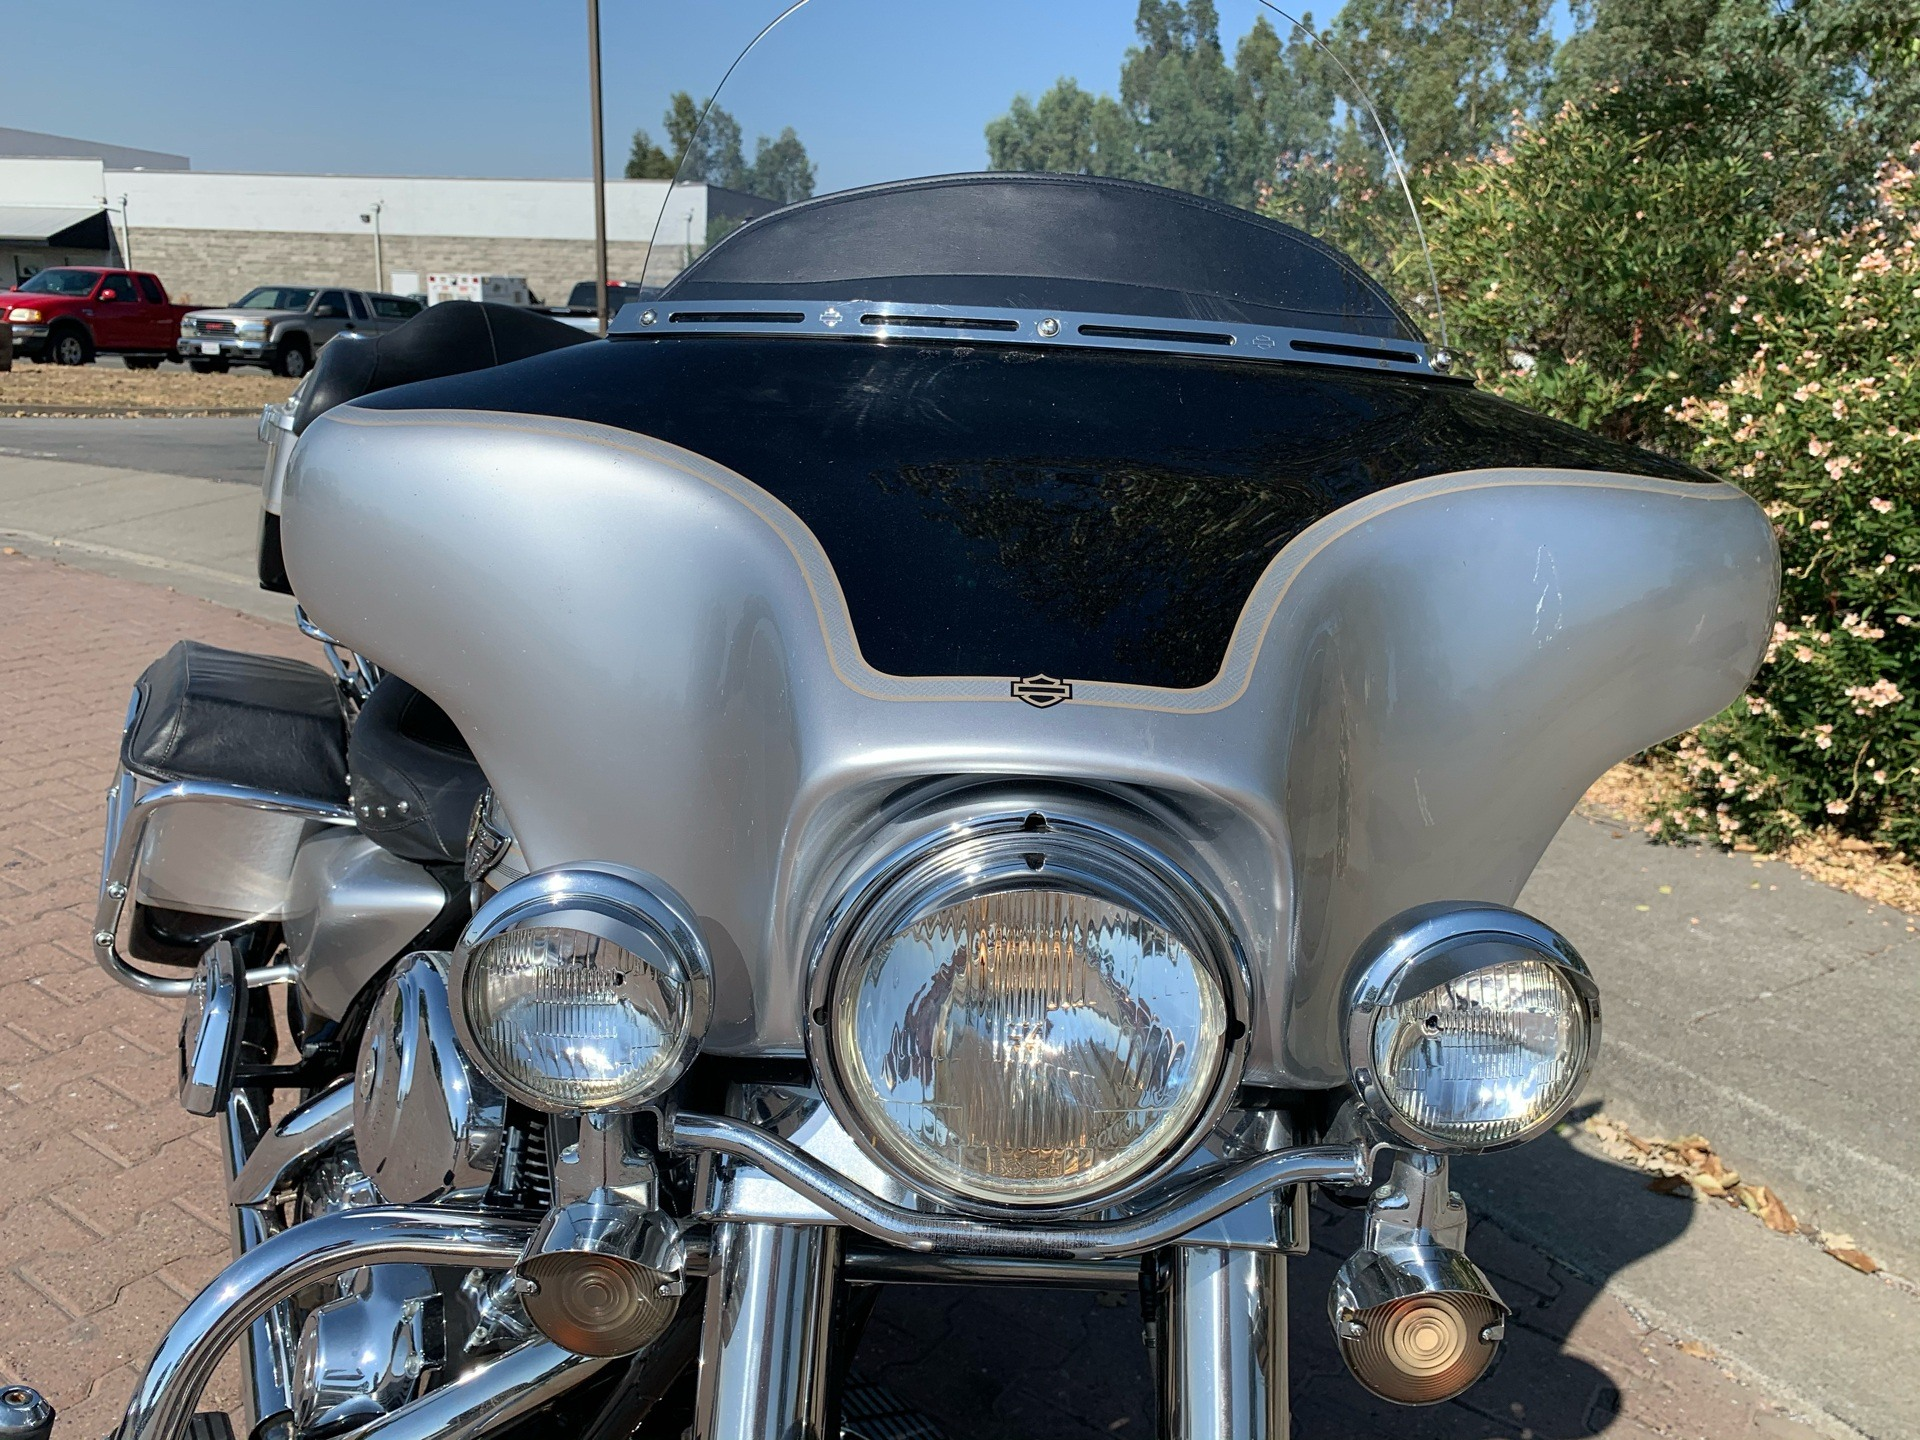 2003 Harley-Davidson FLHTC/FLHTCI Electra Glide® Classic in Vacaville, California - Photo 6